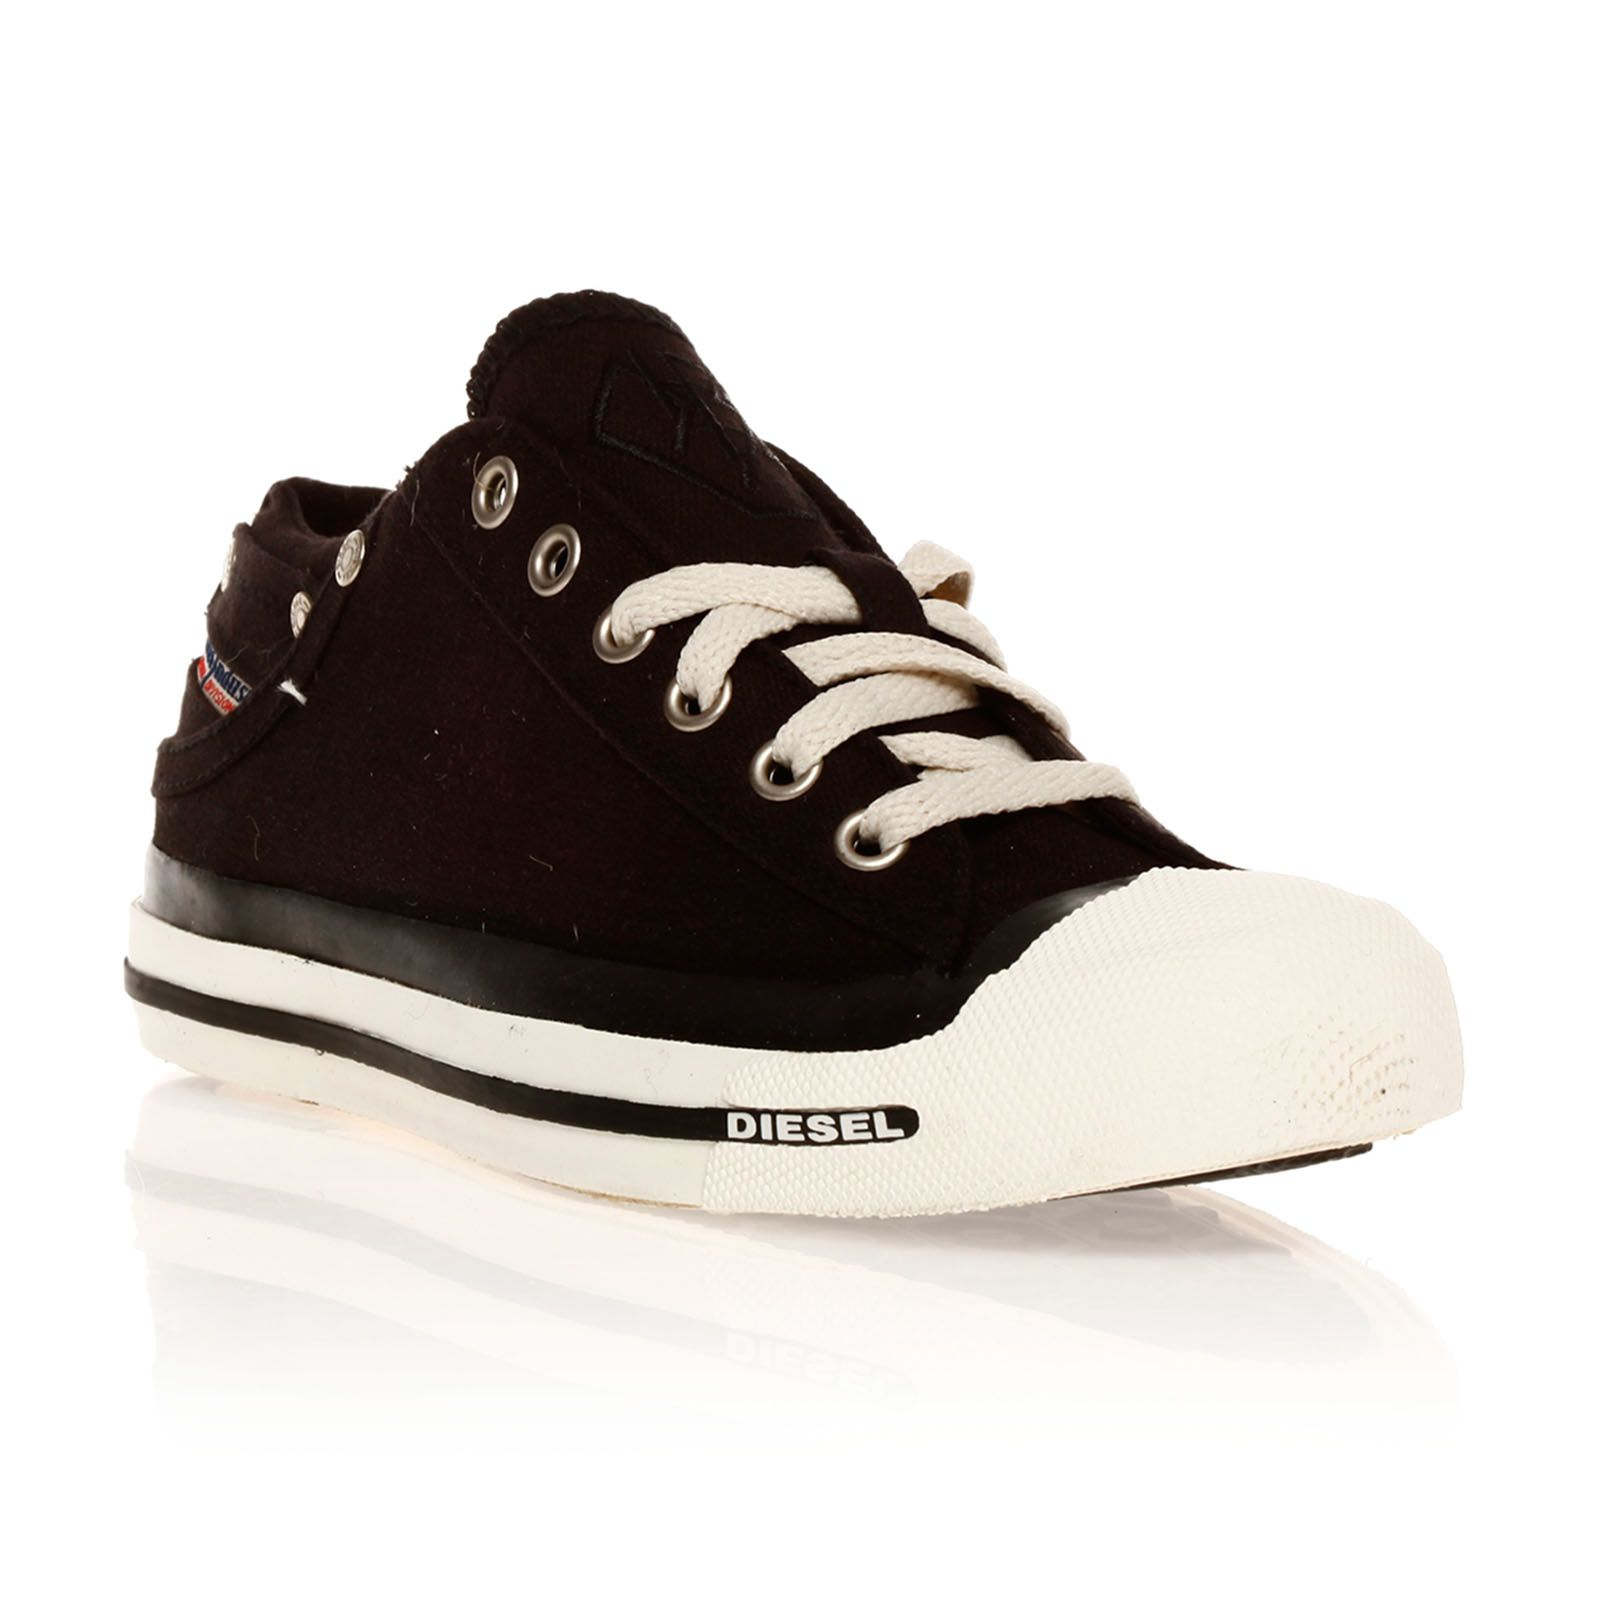 Diesel Magnete Exposure Low - Sneakers - noires